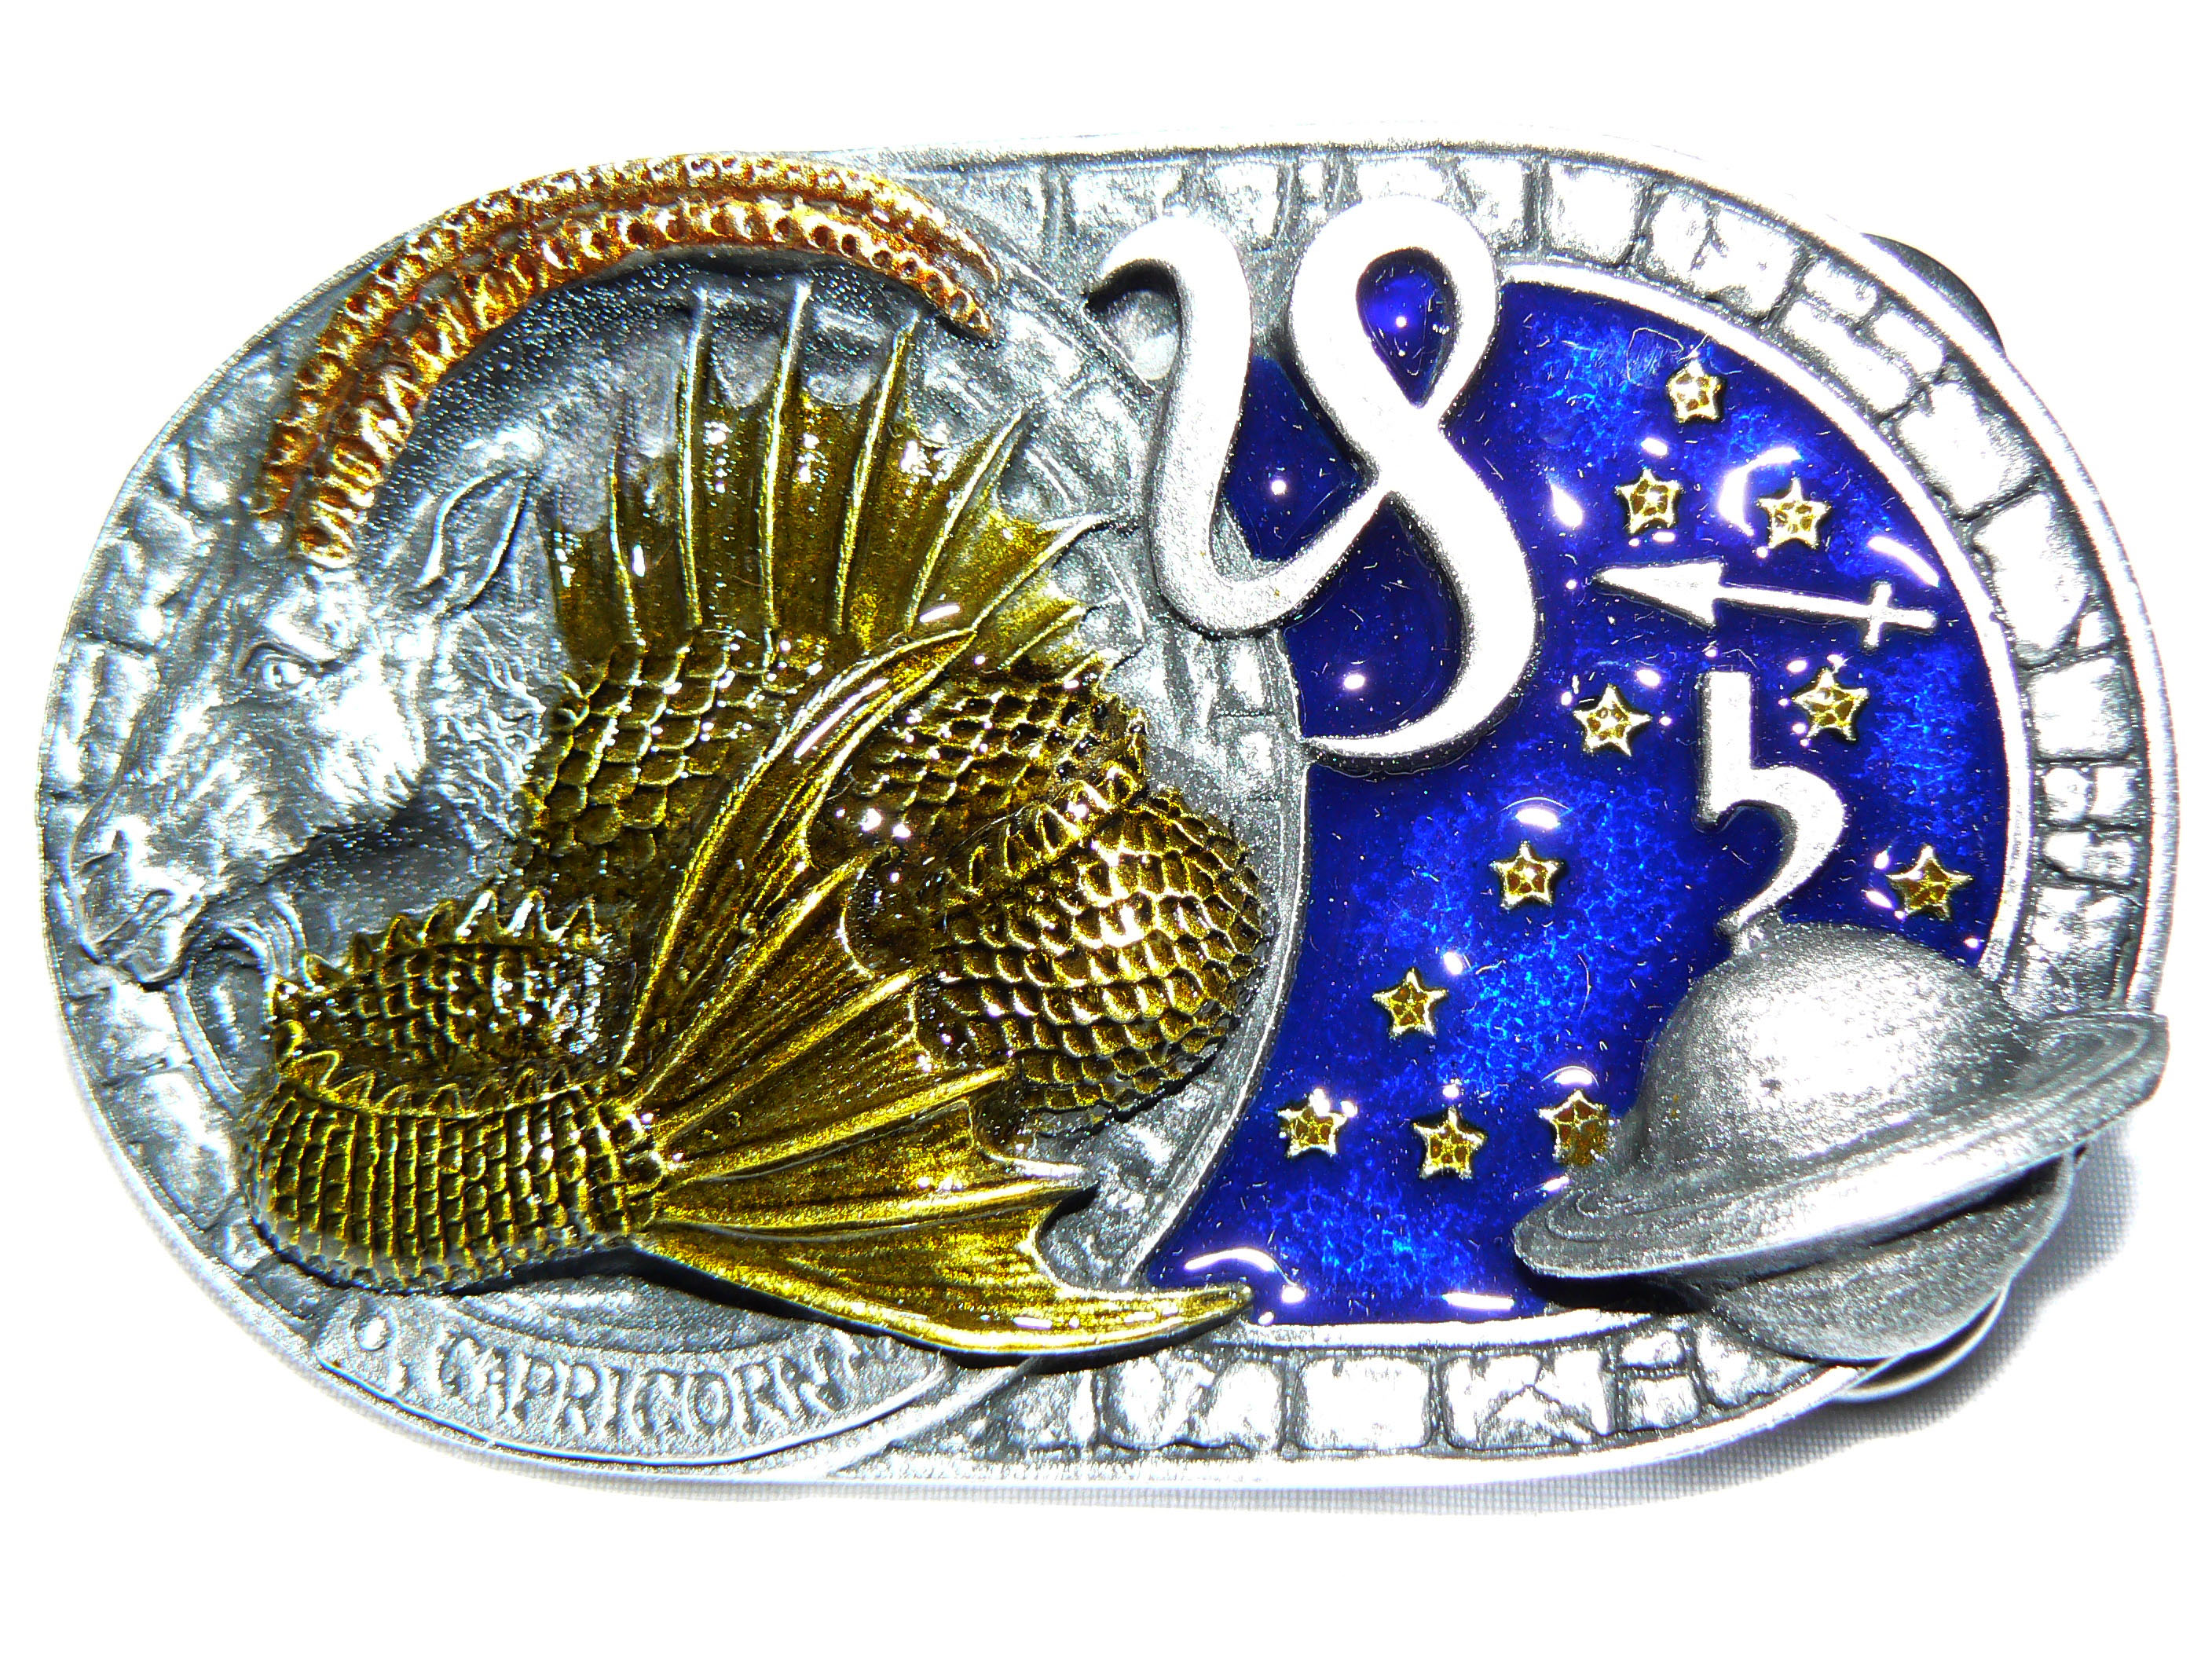 Capricorn Belt Buckle